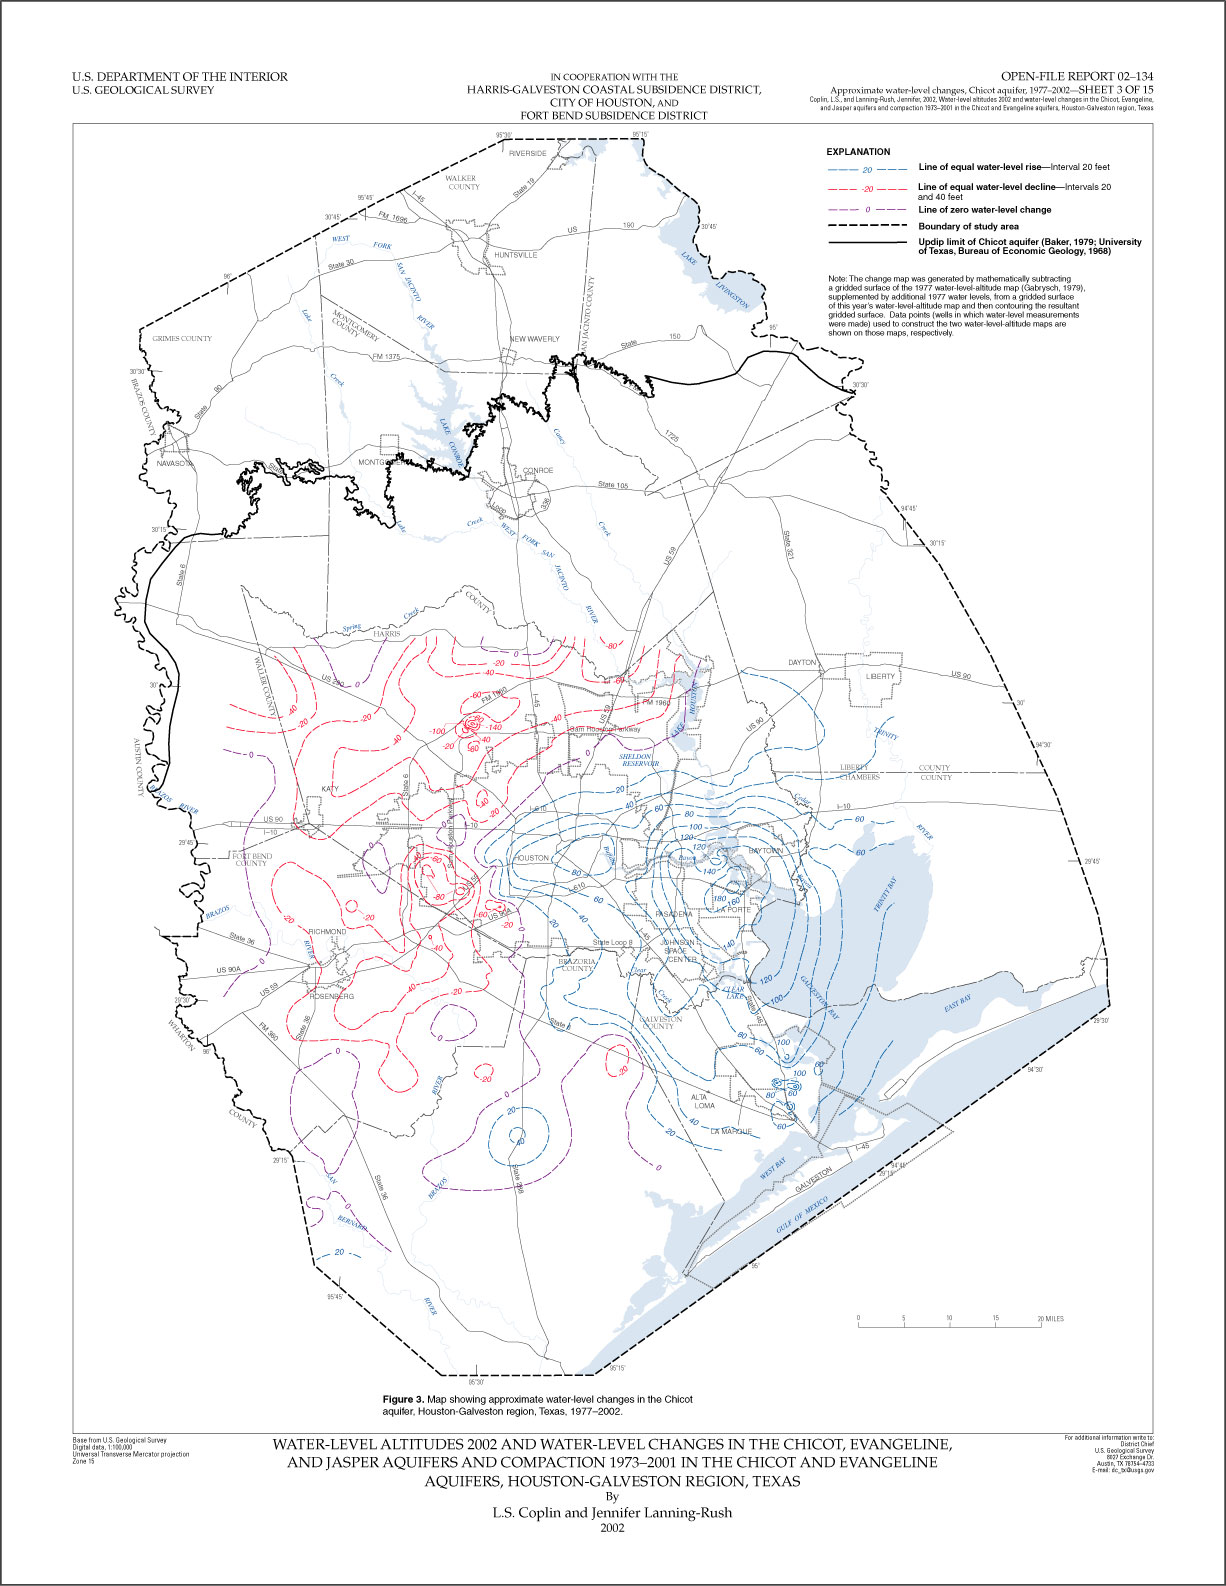 USGS OpenFile Report - 8 1 2 x 11 us map